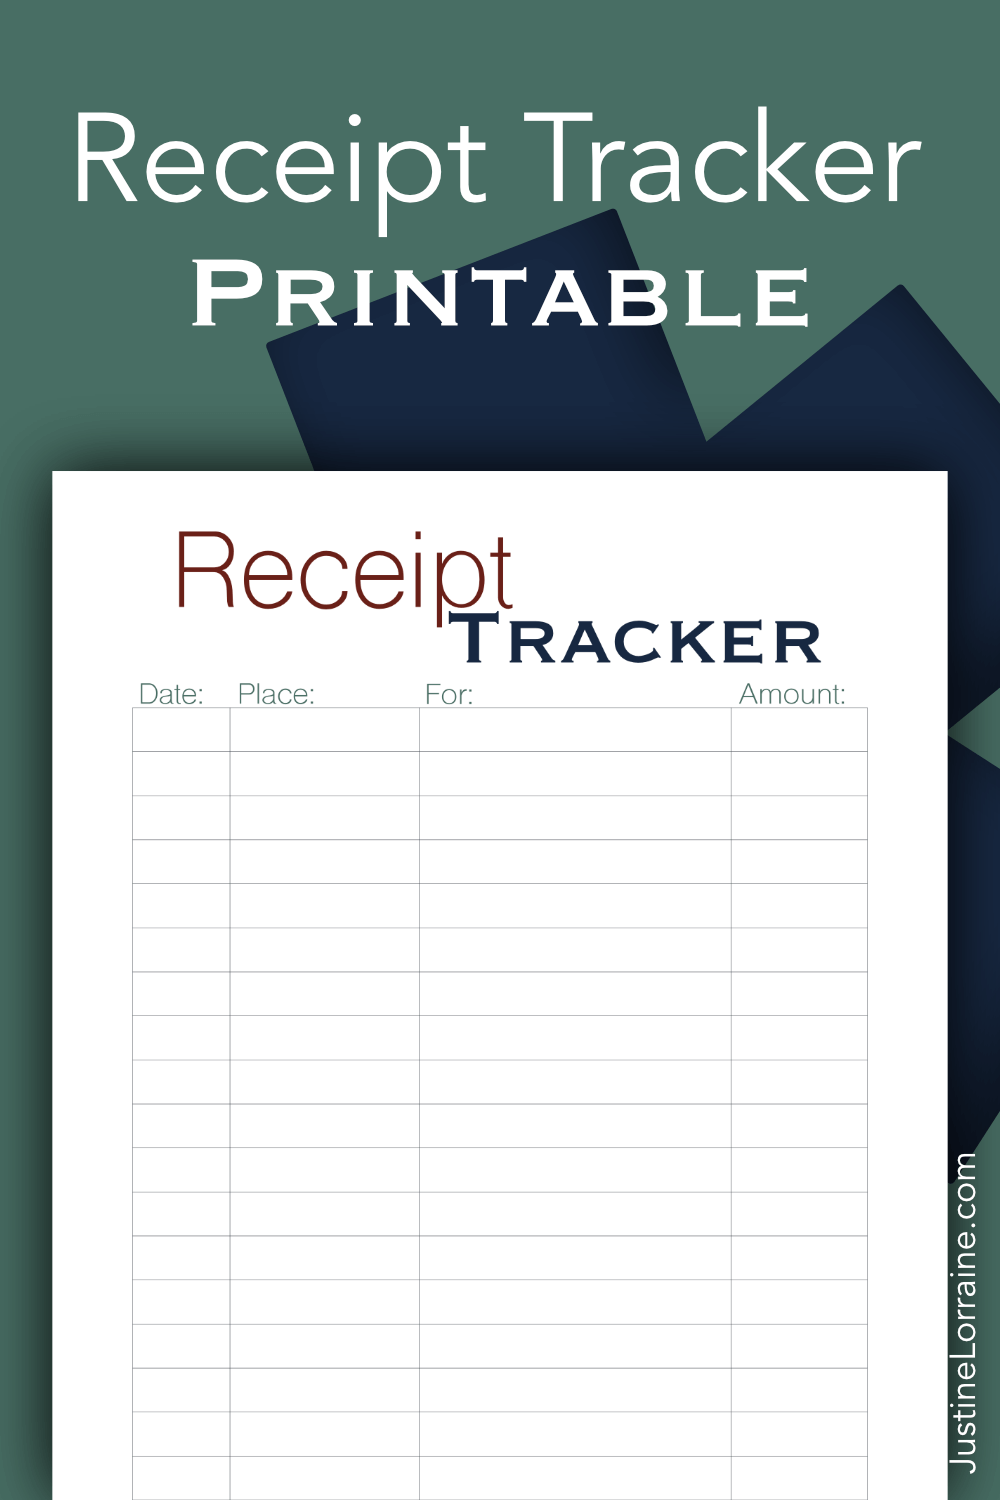 Keeping track of how much we spend is hard. I've created a Receipt Tracker printable to help keep track of receipts and spending.